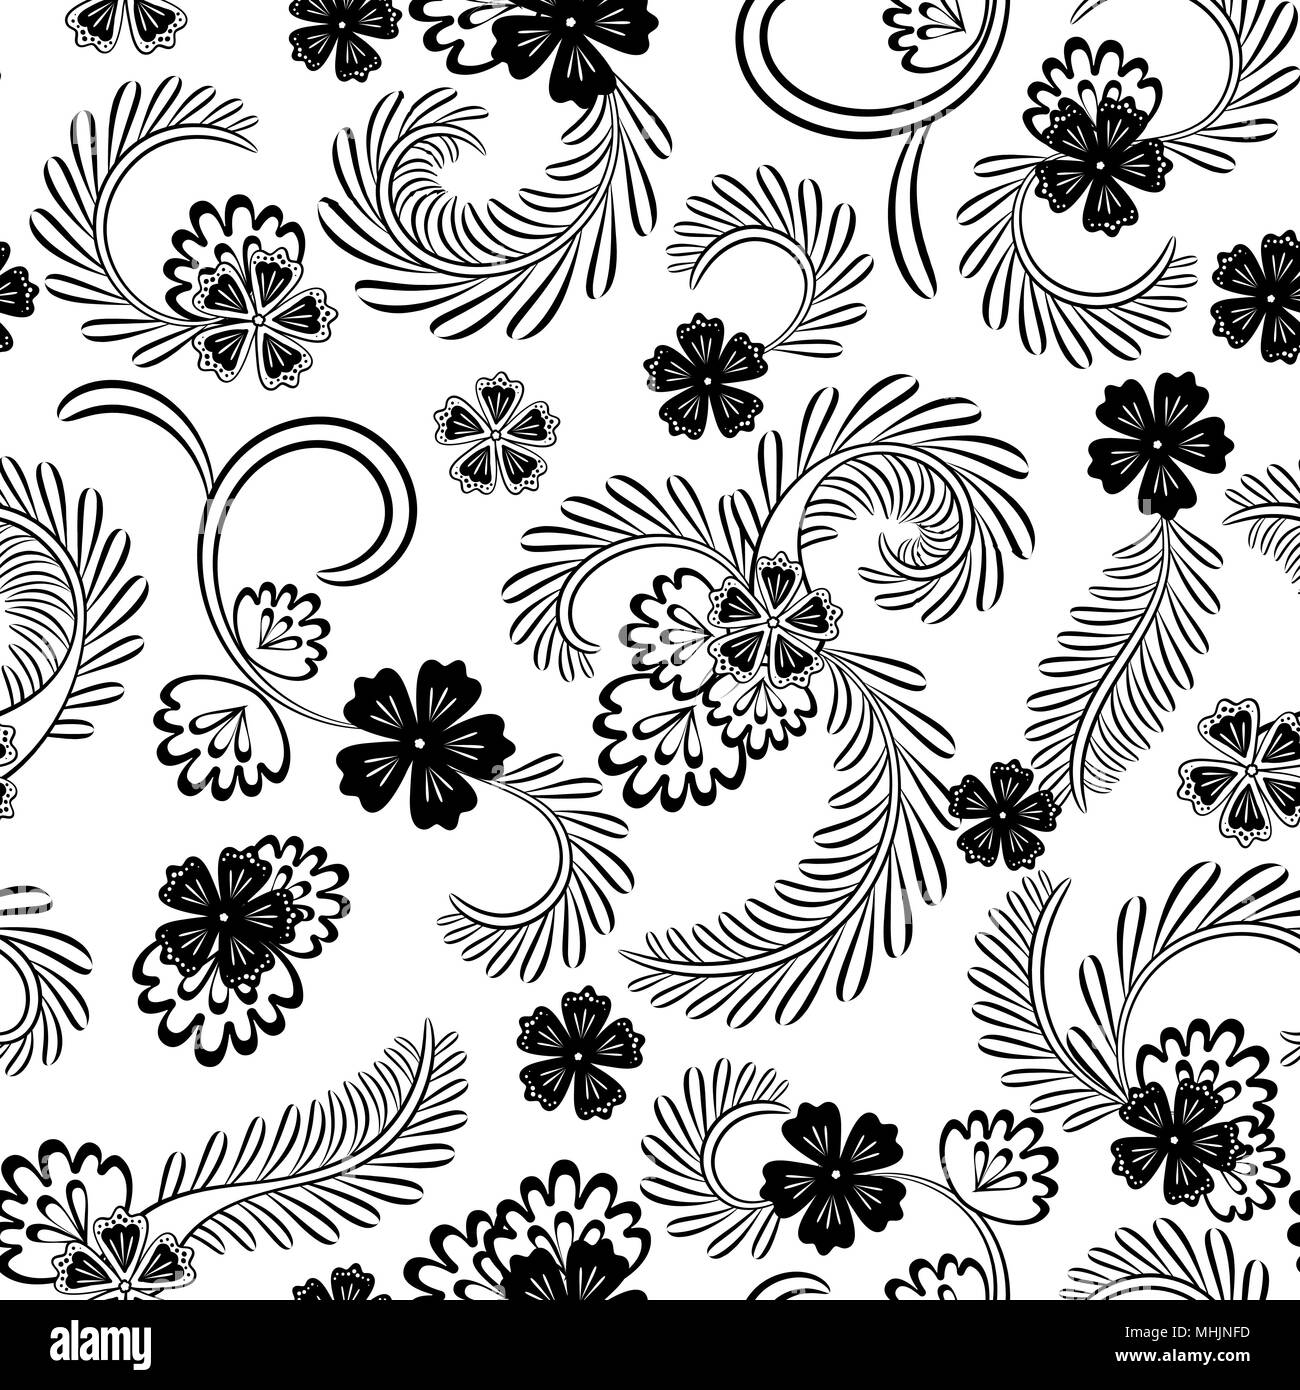 Vintage seamless black and white floral pattern on a black background vector illustration one color print